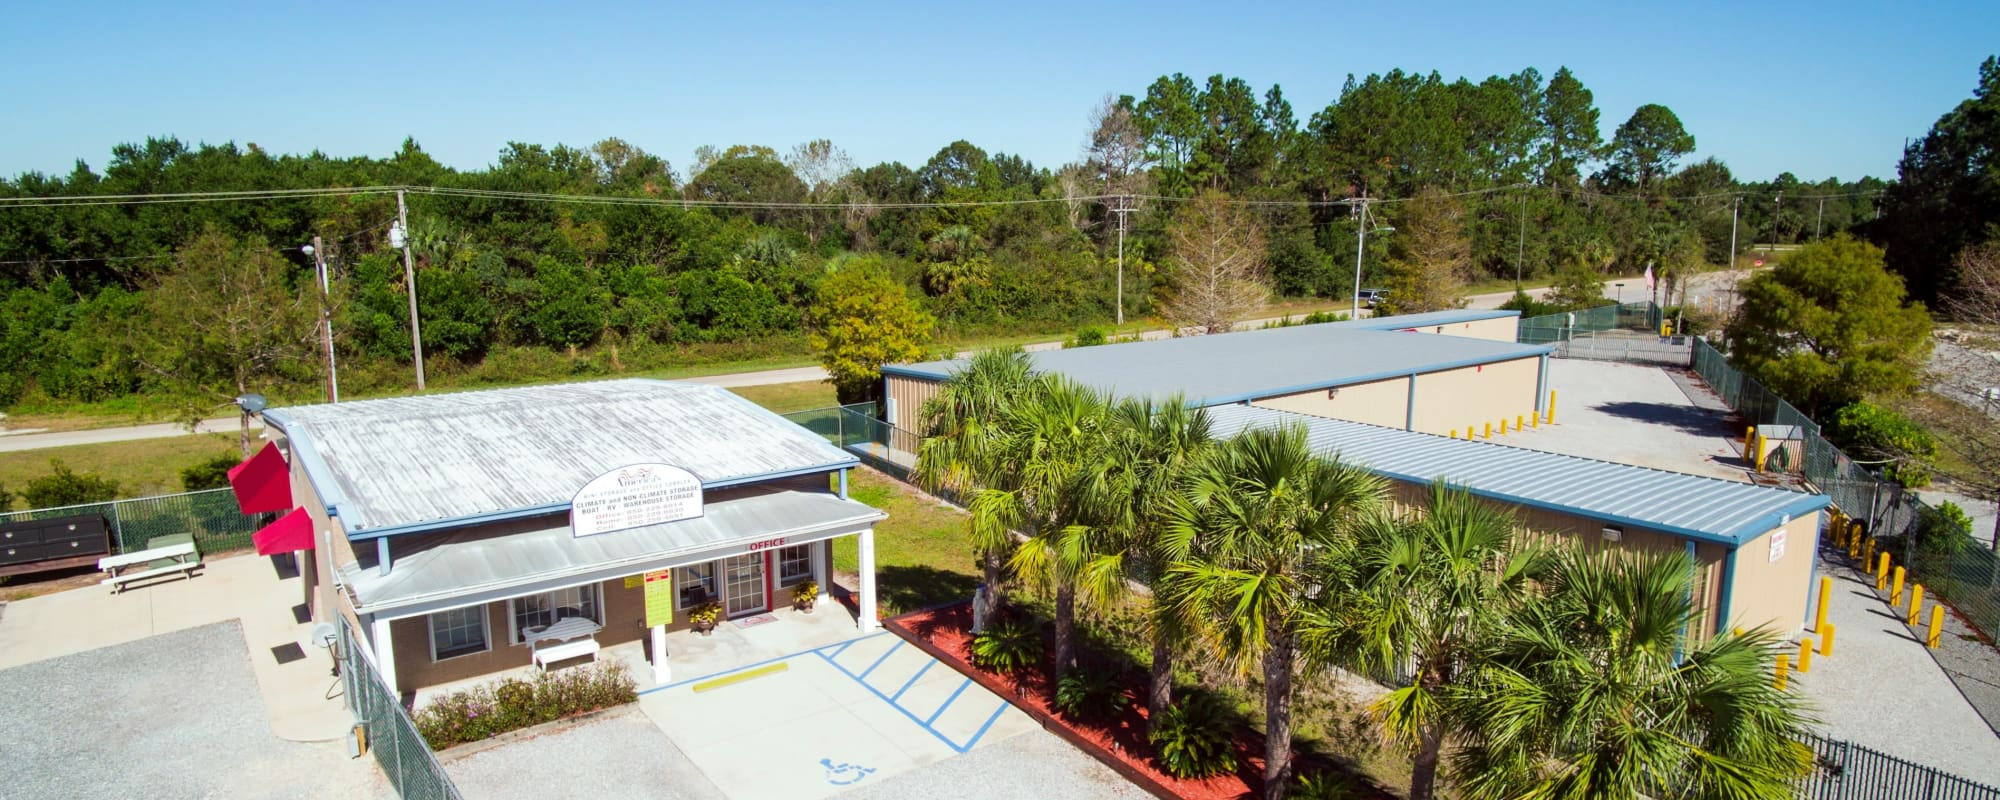 Self storage in Port St. Joe FL